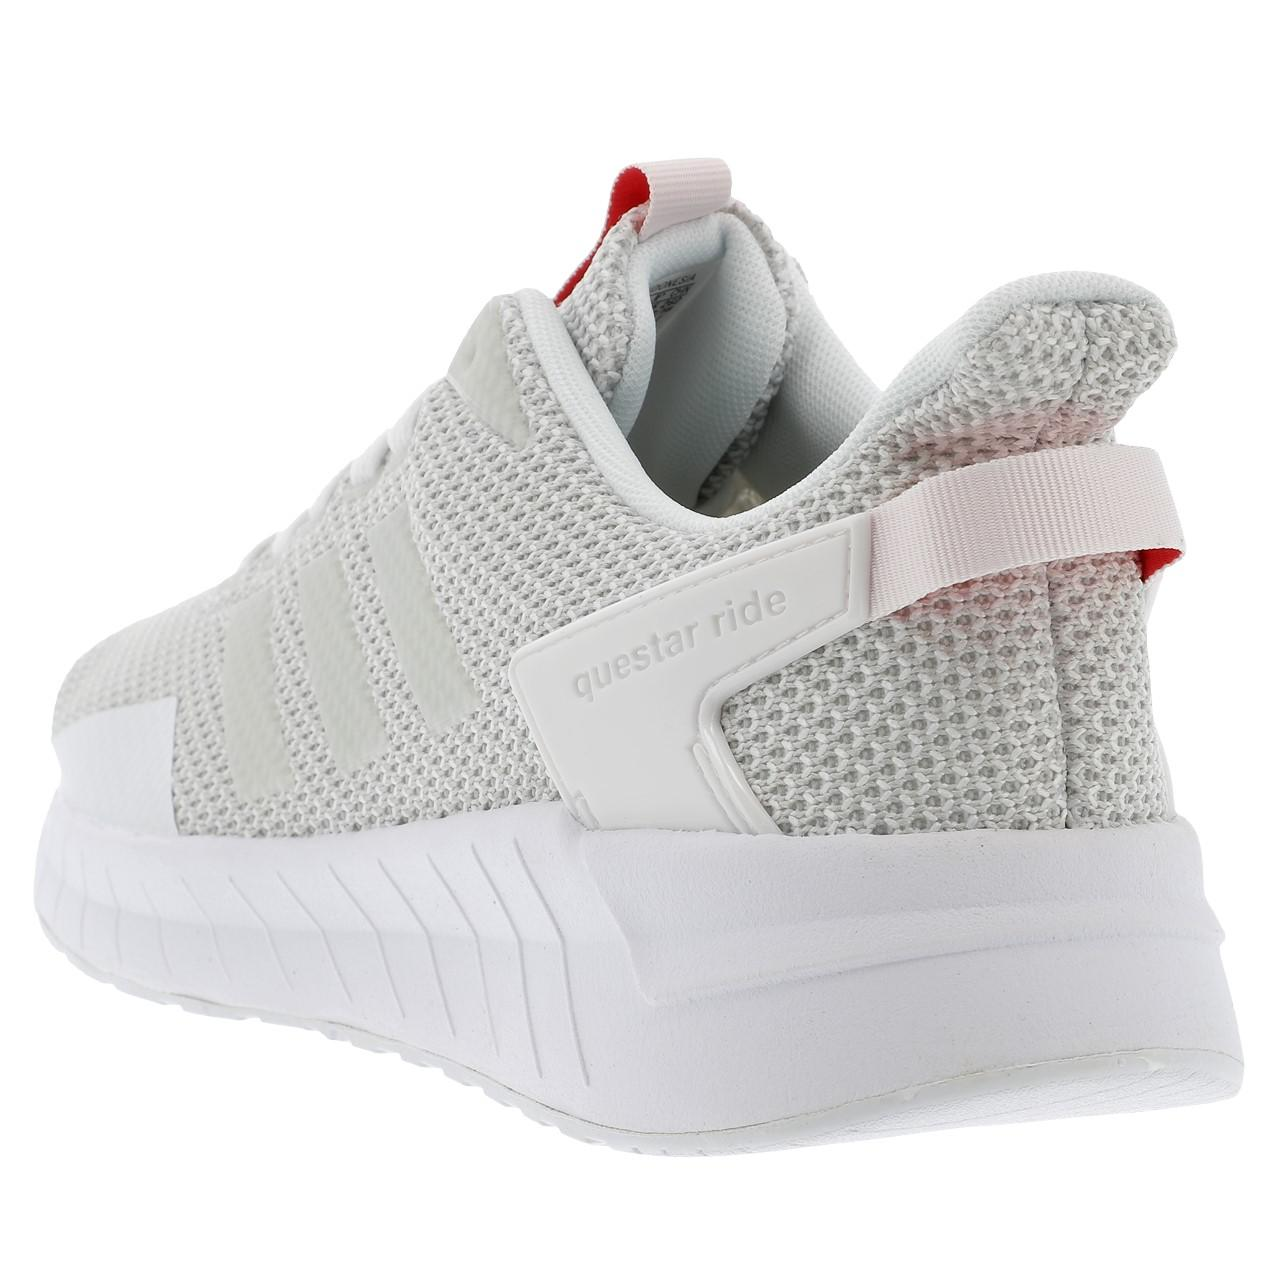 lowest price d59dc 1f6d8 ... Zapatos running mode Adidas Adidas Adidas Questar ride wht grs Blanc  201816 Neuf df0b80 ...